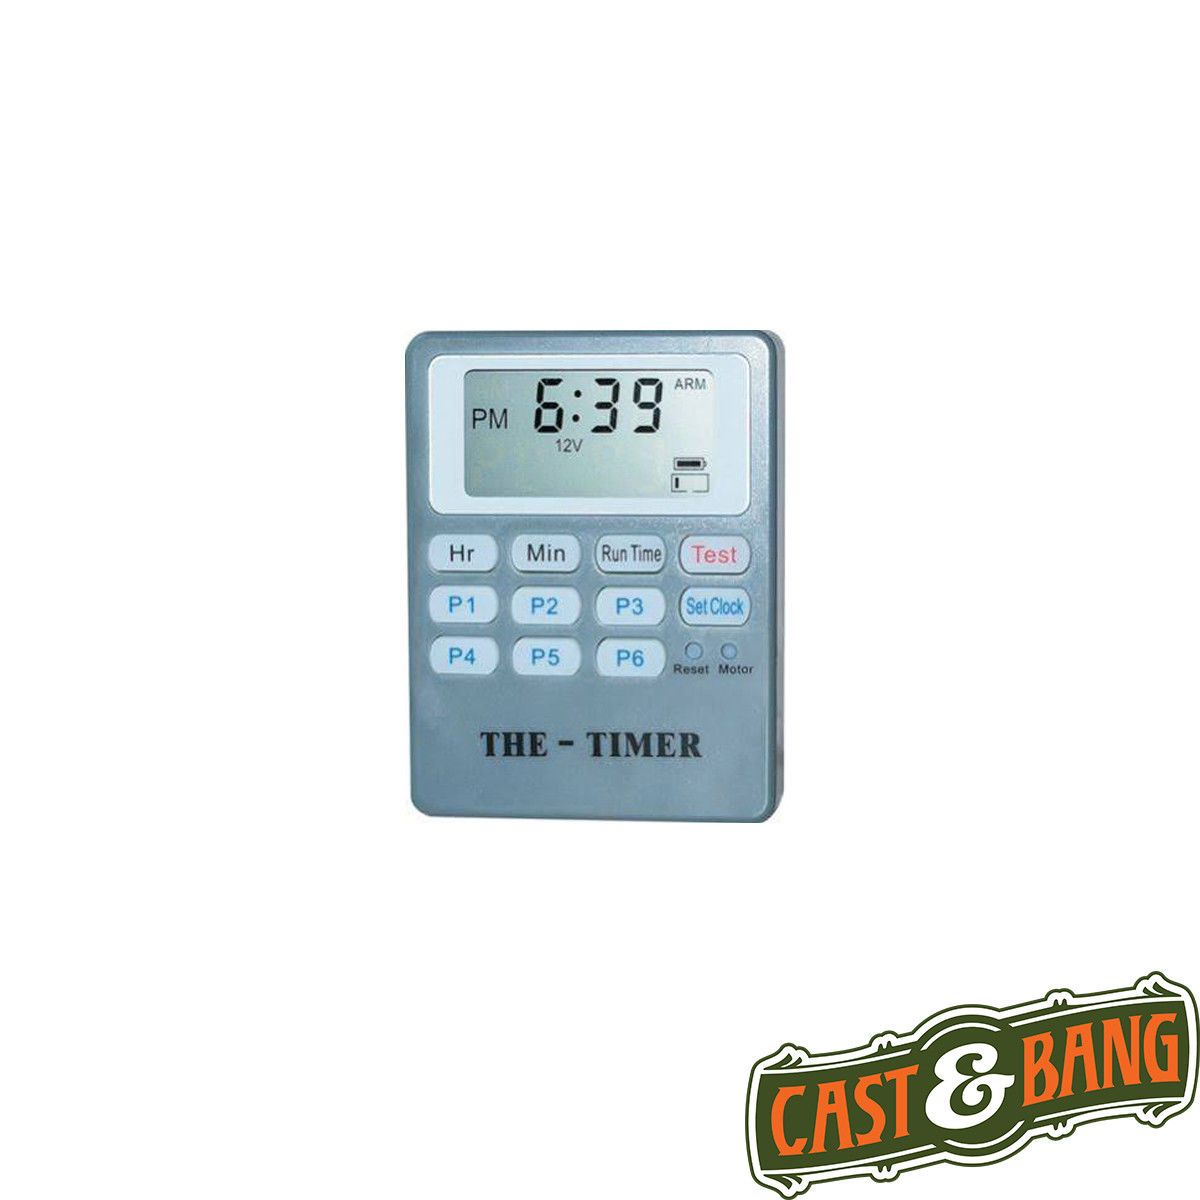 Game Feeders And Feed 52504: All Seasons Feeders The Timer Feeder Remote  U003e  BUY IT NOW ONLY: $59 On #eBay #feeders #seasons #feeder #remote